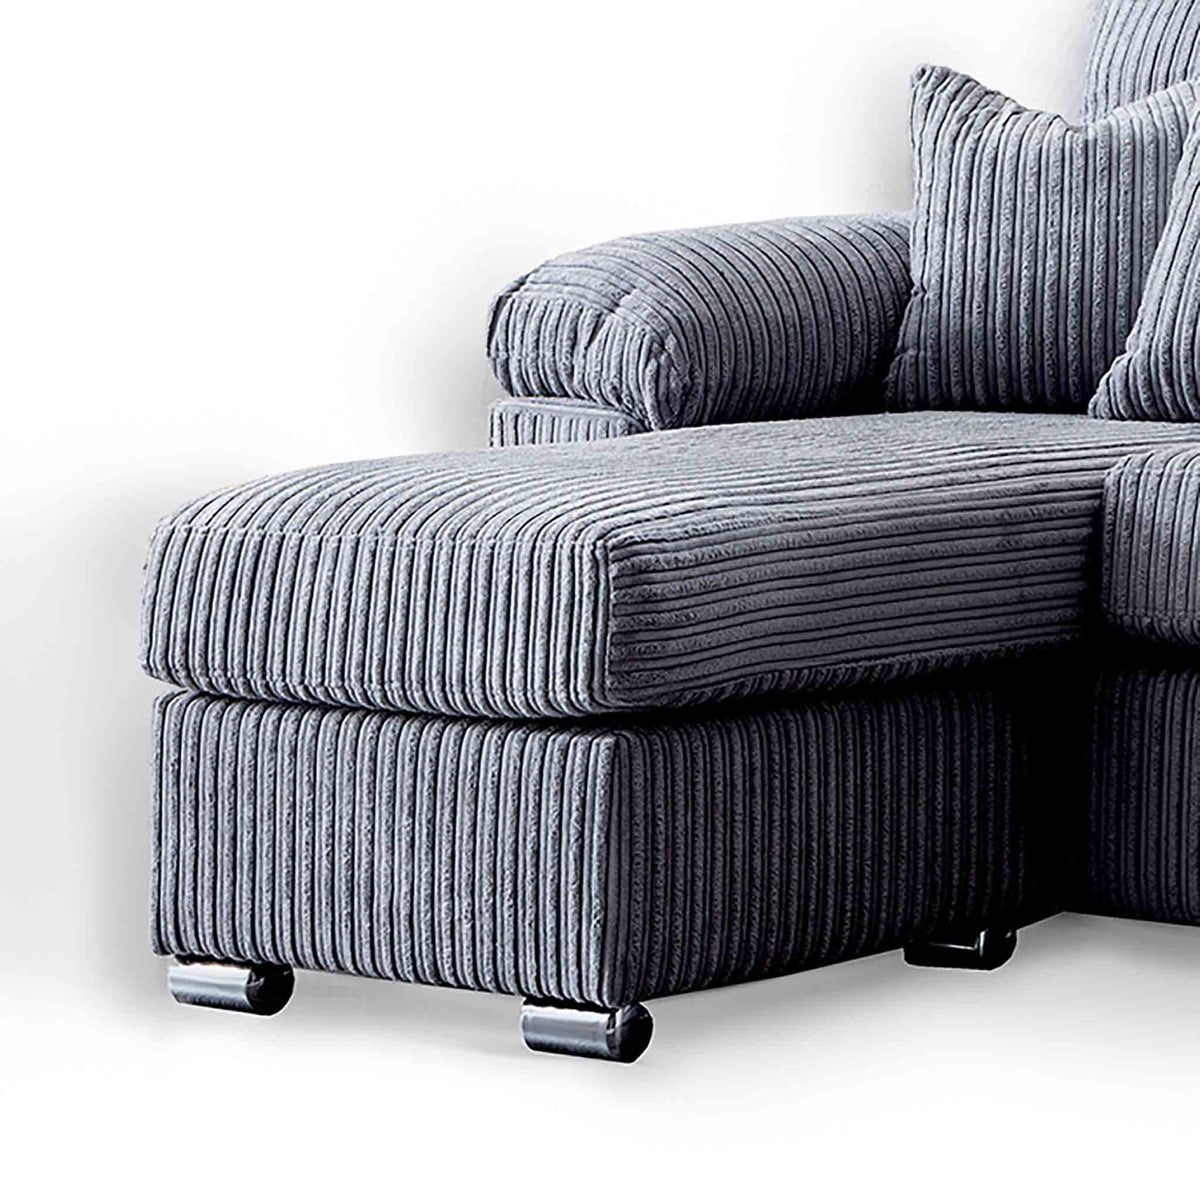 close up of the featured footstool and chaise cushion on the Amalfi Charcoal Corner Chaise Fabric Sofa